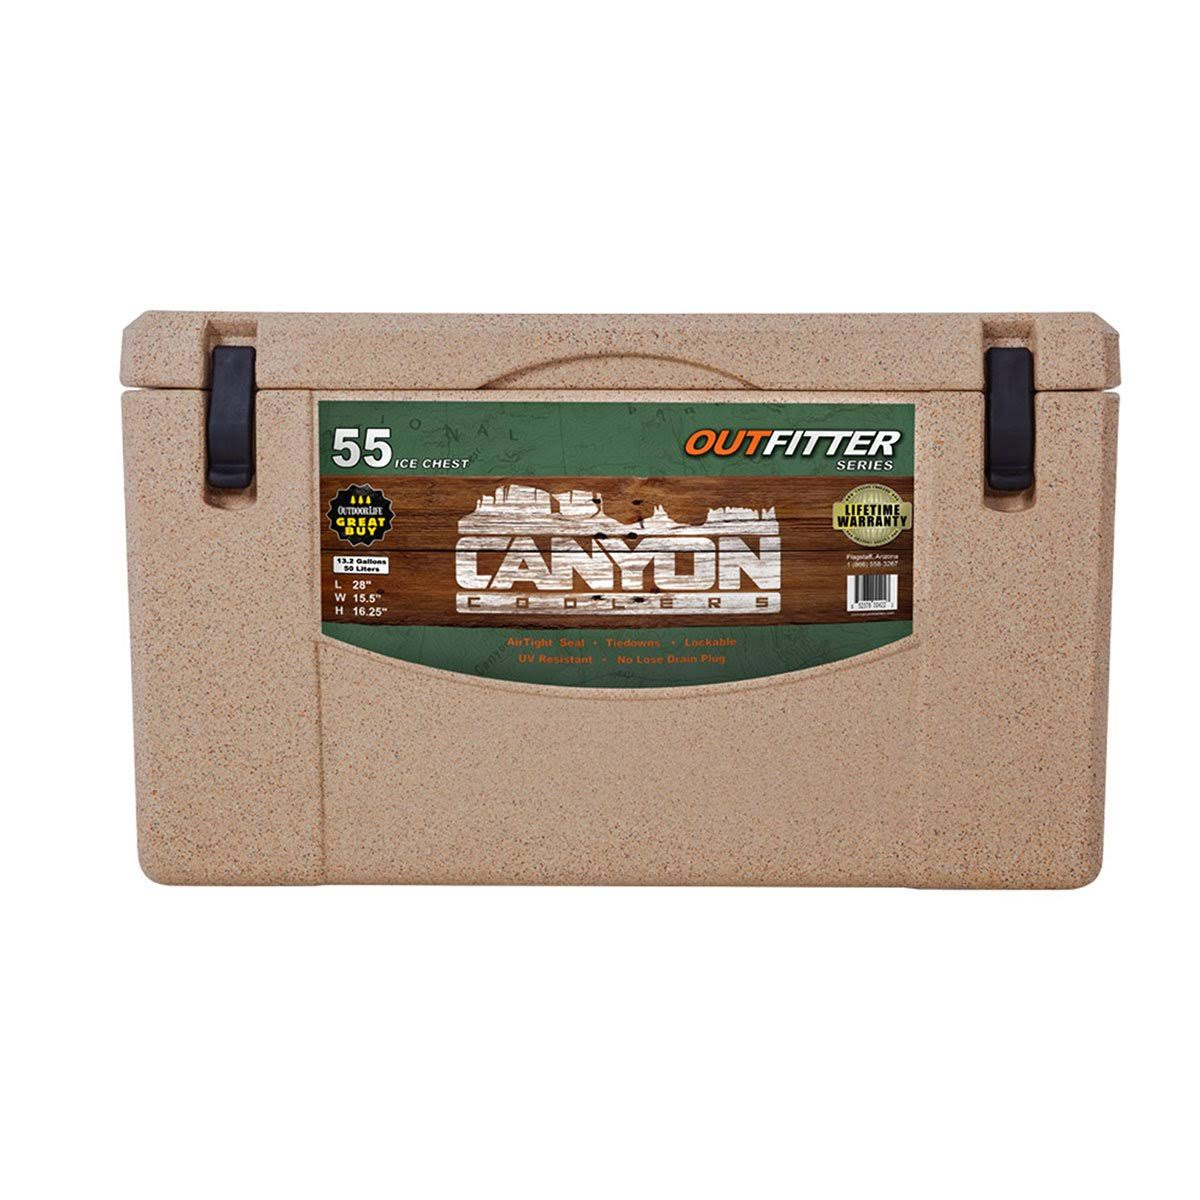 Canyon Coolers Outfitter Rotomolded Cooler - Sandstone, 55 Quart